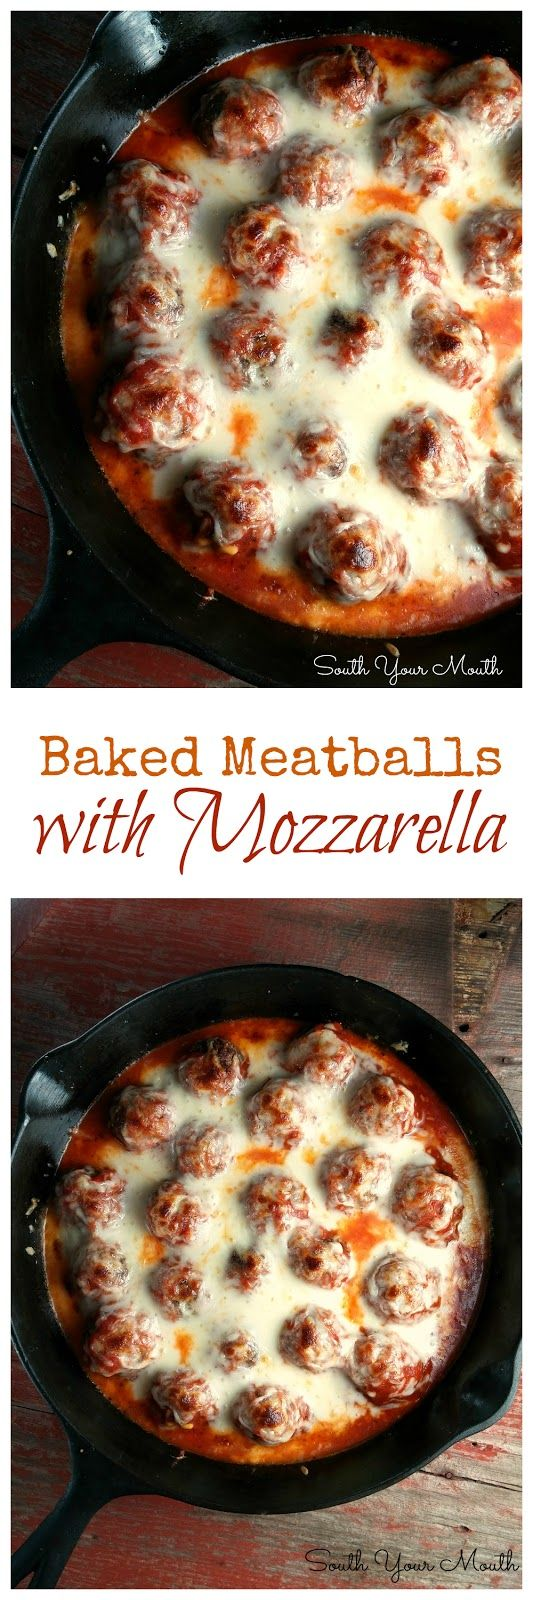 Italian meatballs baked in tangy marinara and topped with gobs of buttery, gooey mozzarella.